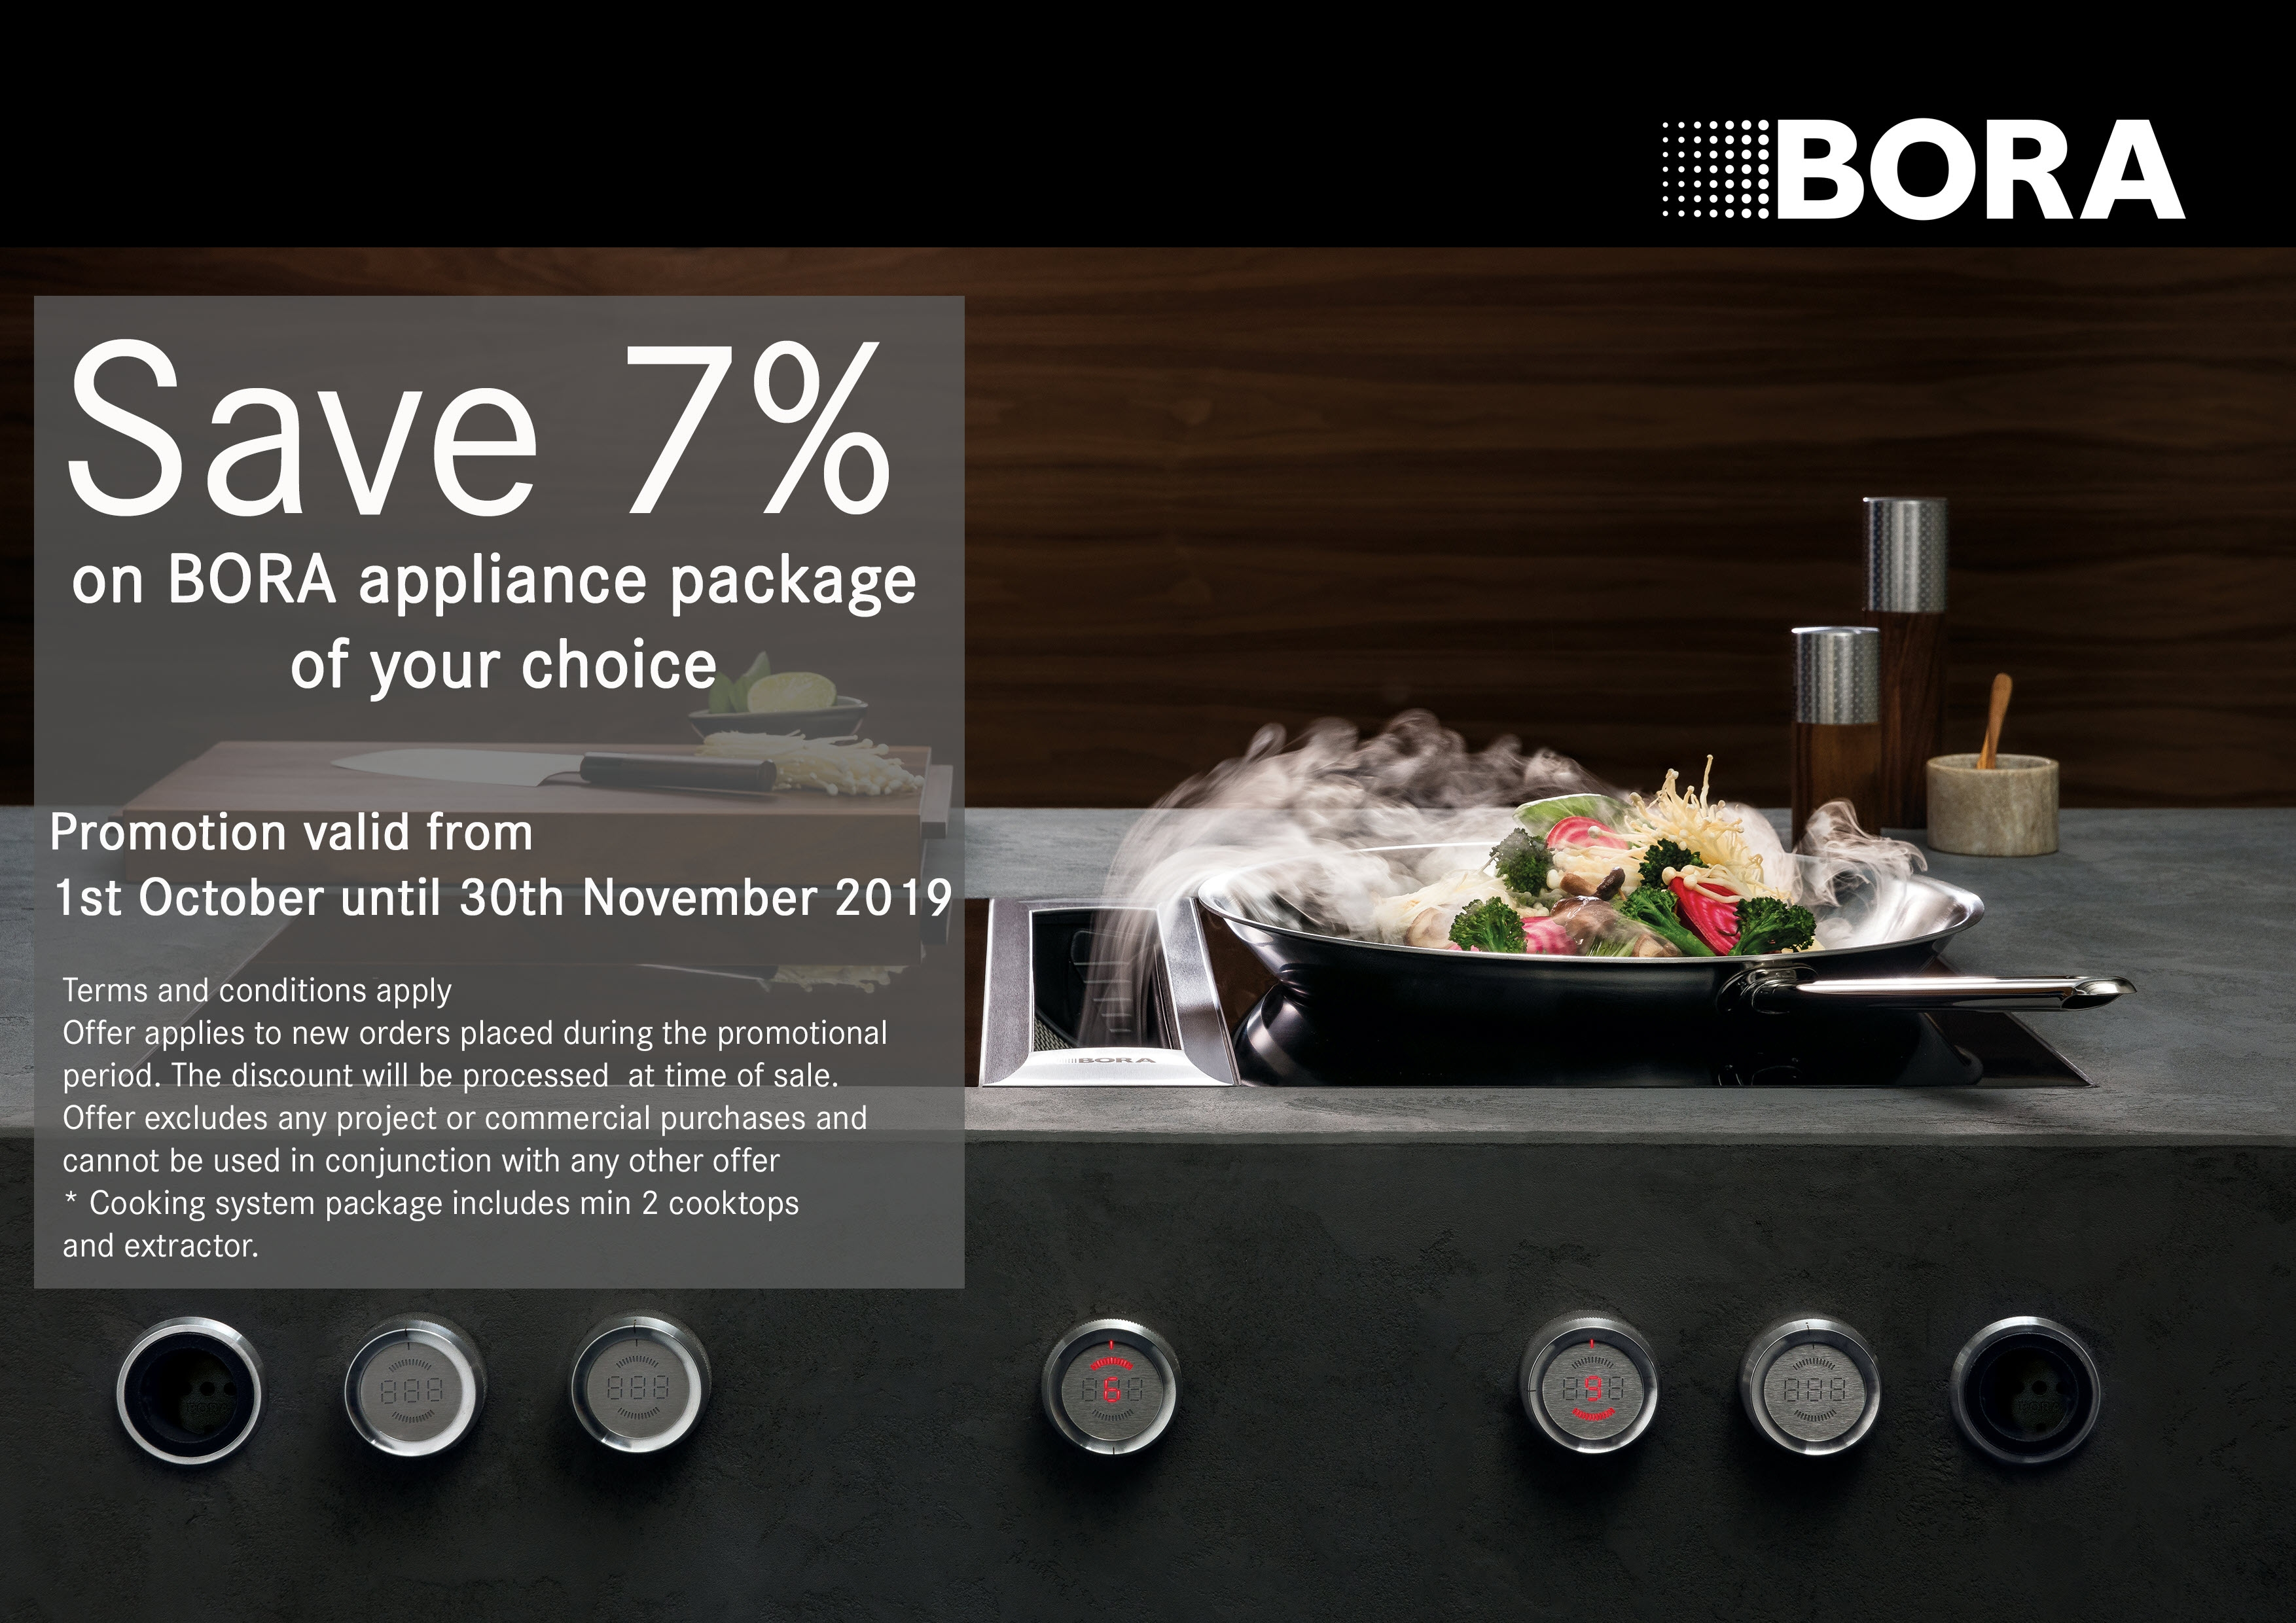 7% off all Bora Professional, Classic and Basic System